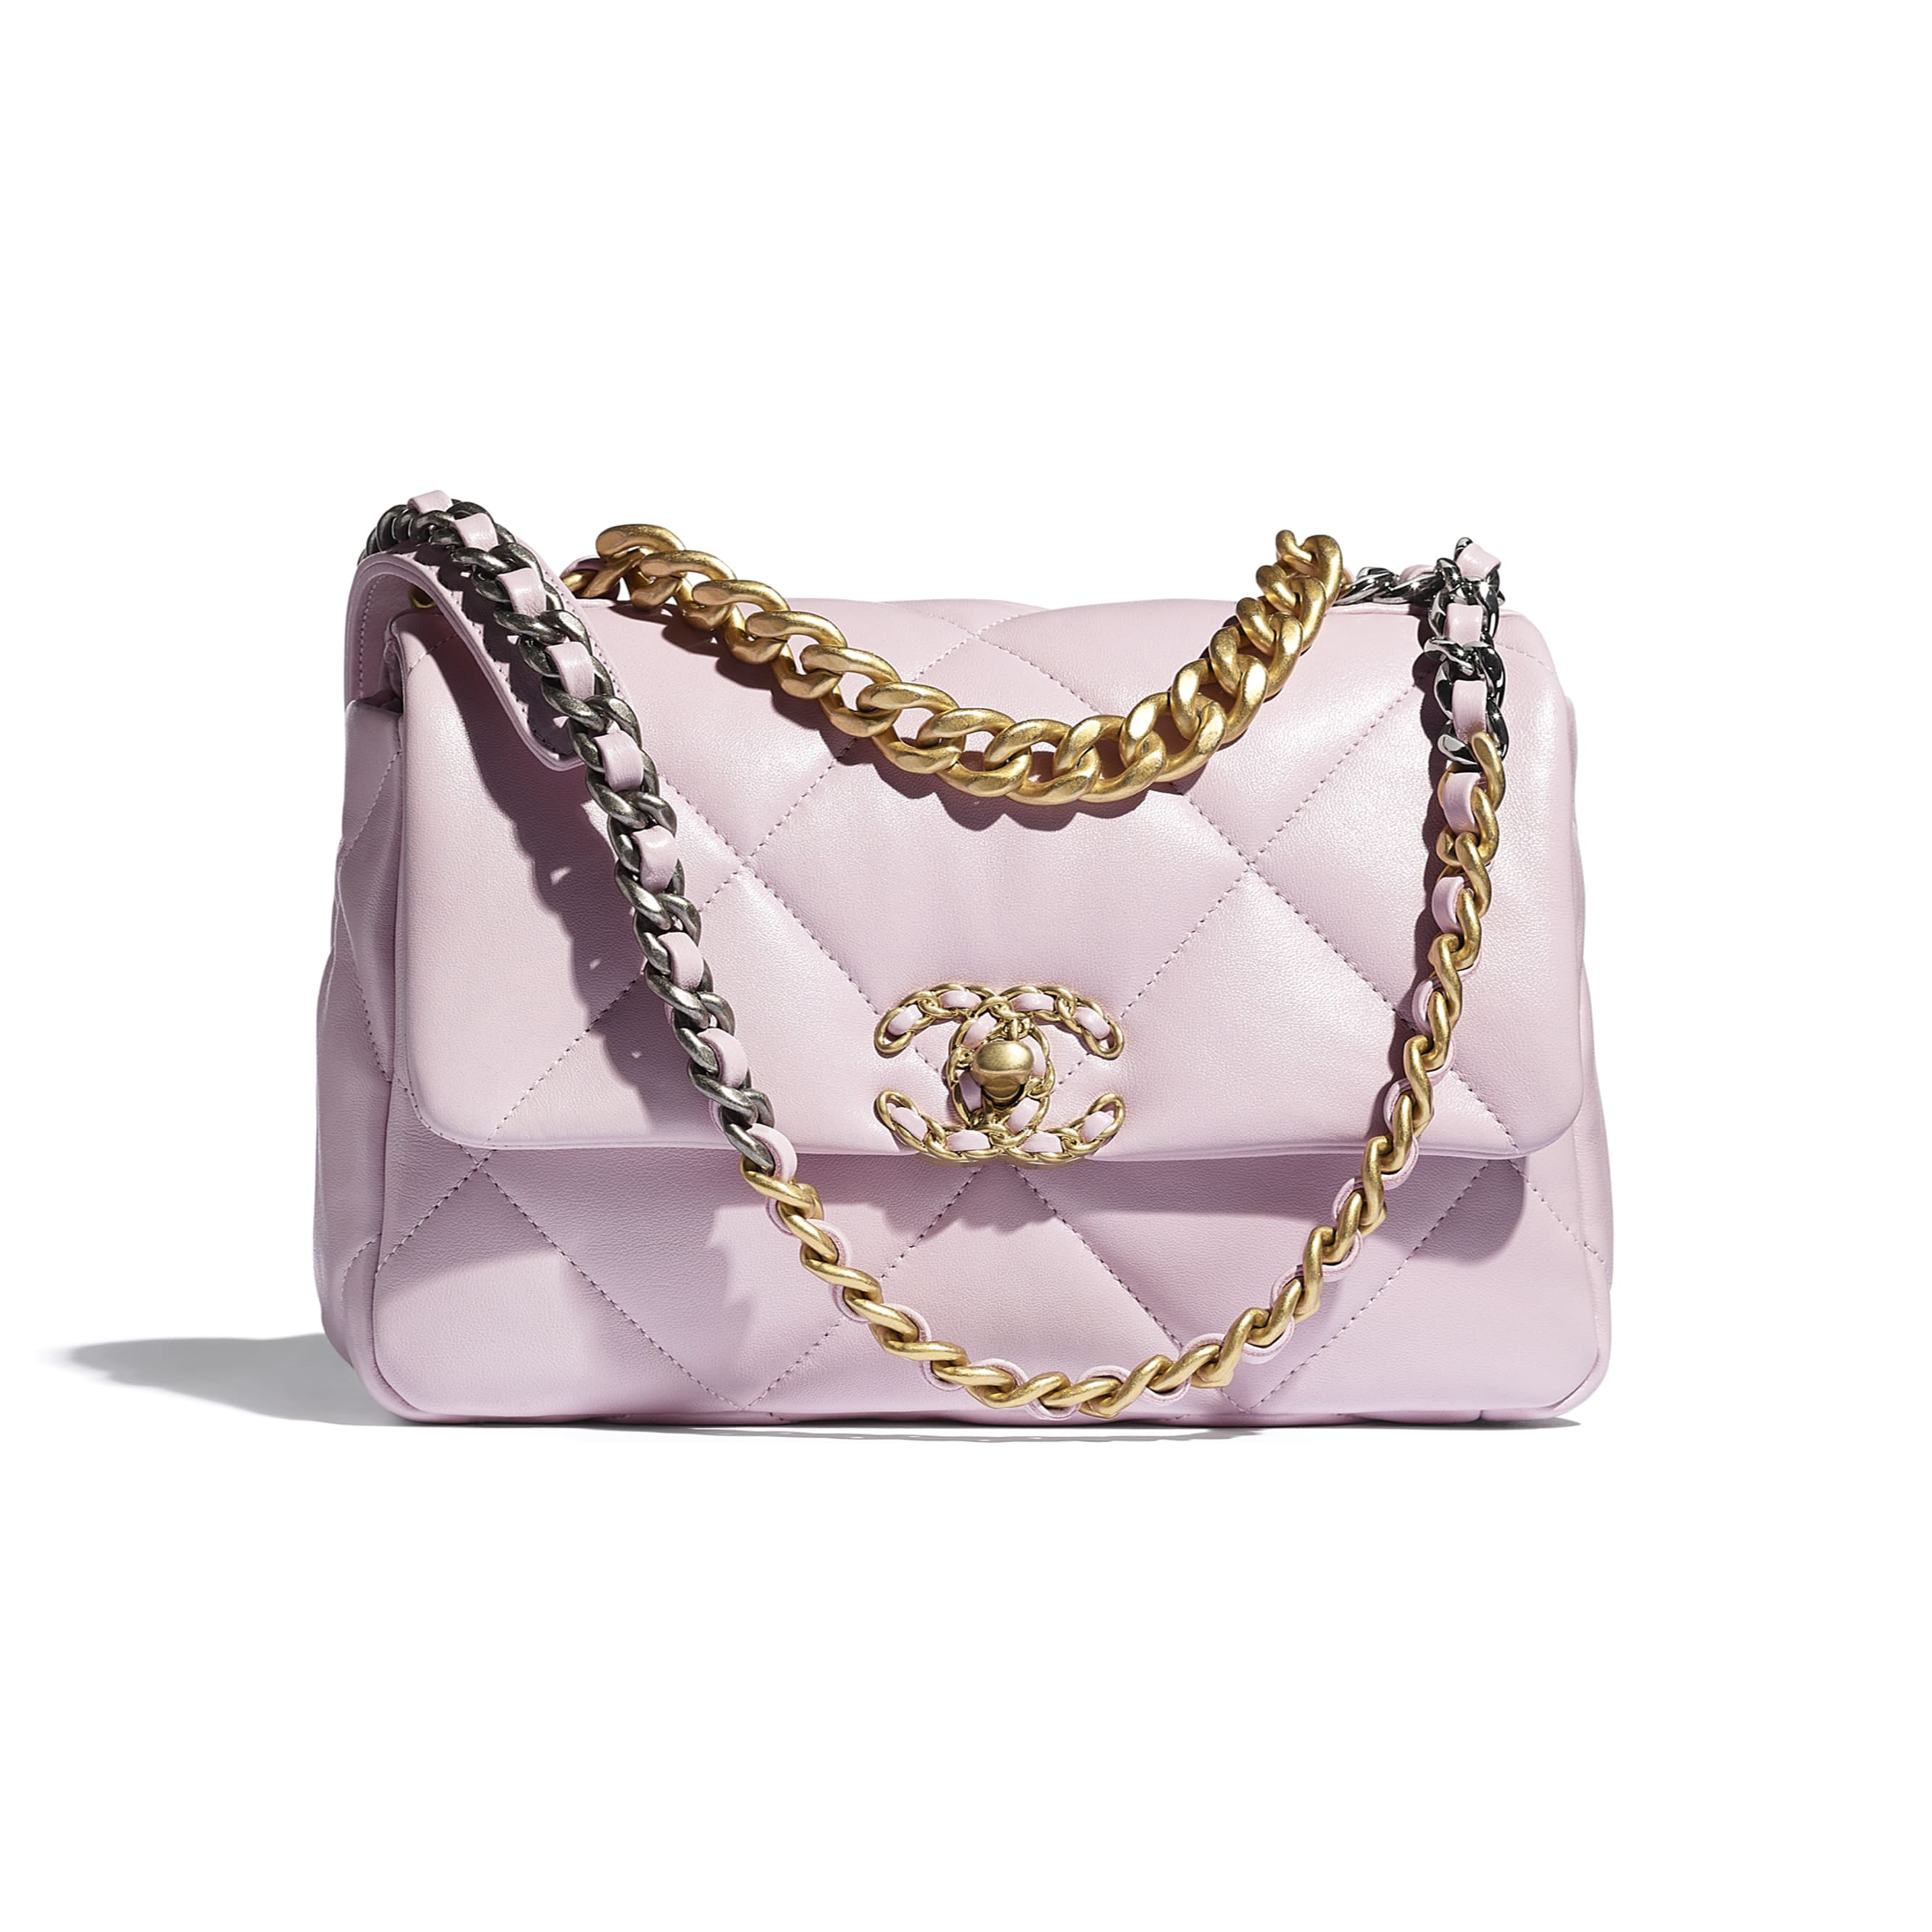 CHANEL 19 Handbag - Light Pink - Lambskin, Gold-Tone, Silver-Tone & Ruthenium-Finish Metal - CHANEL - Default view - see standard sized version